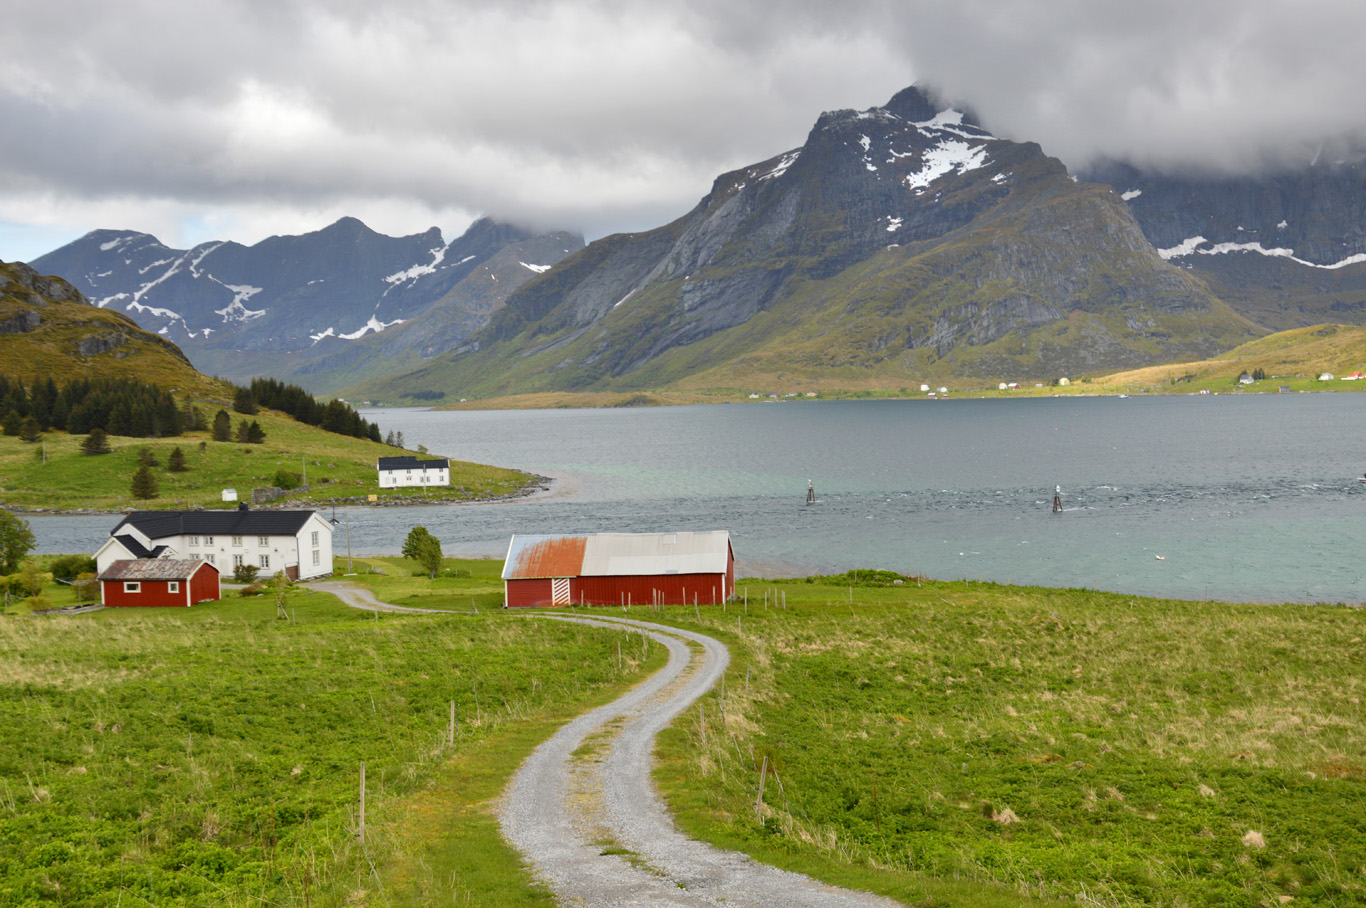 Typical countryside in Lofoten